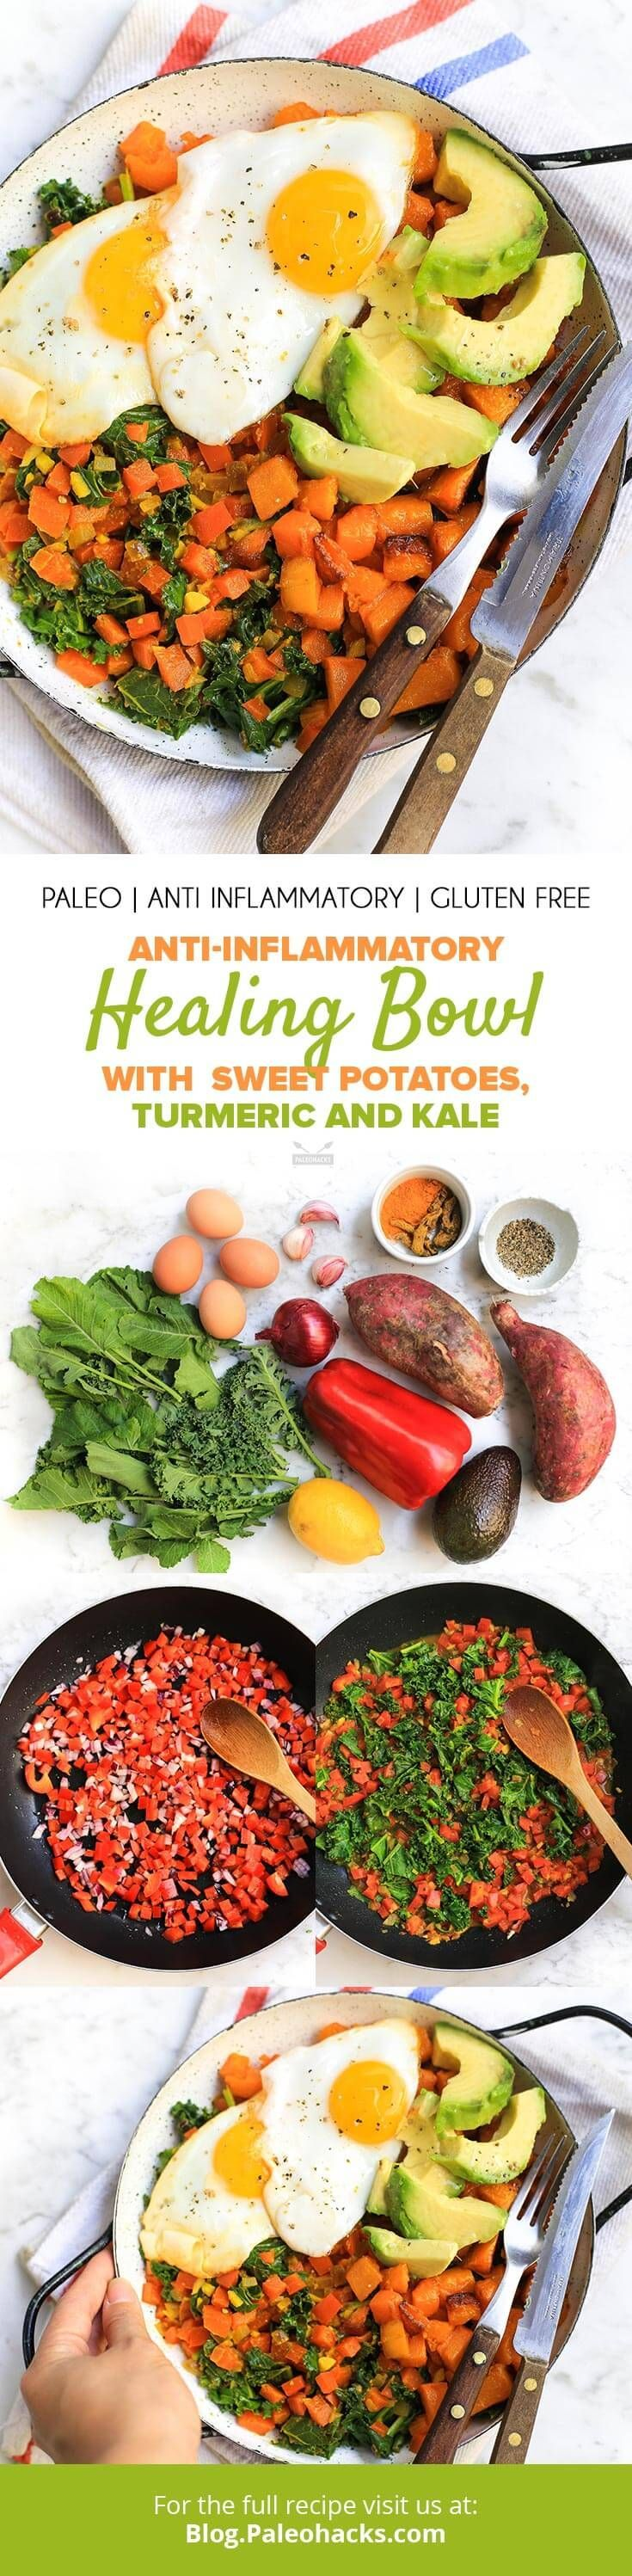 Dig into this super healthy healing bowl filled with kale, sweet potato, eggs, avocado and turmeric! Get the full recipe here: http://paleo.co/antiinflammbowl